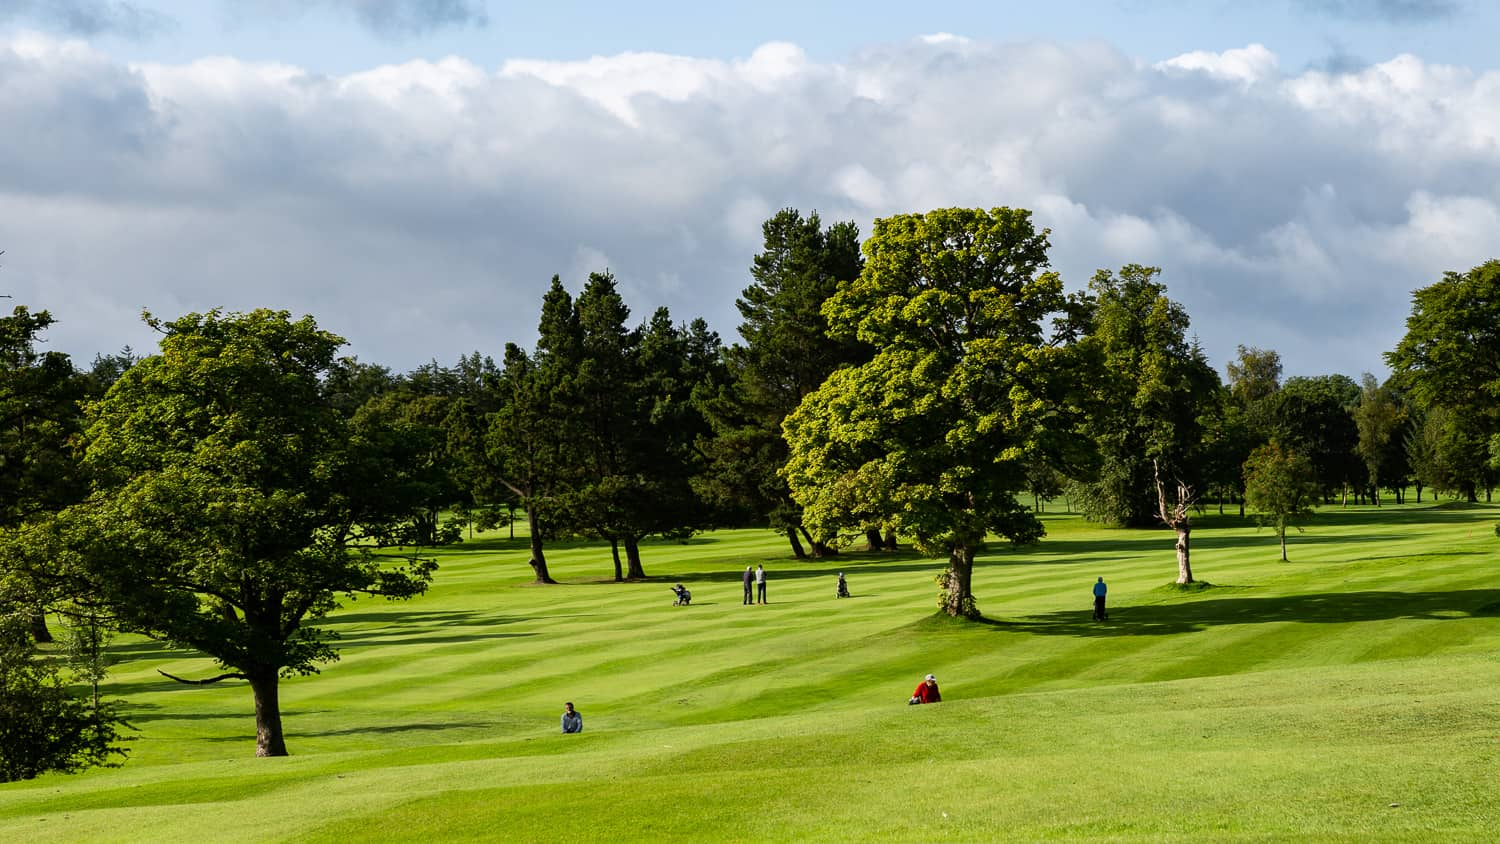 Uphall_Golf_Club_Course_Images (21 of 32)